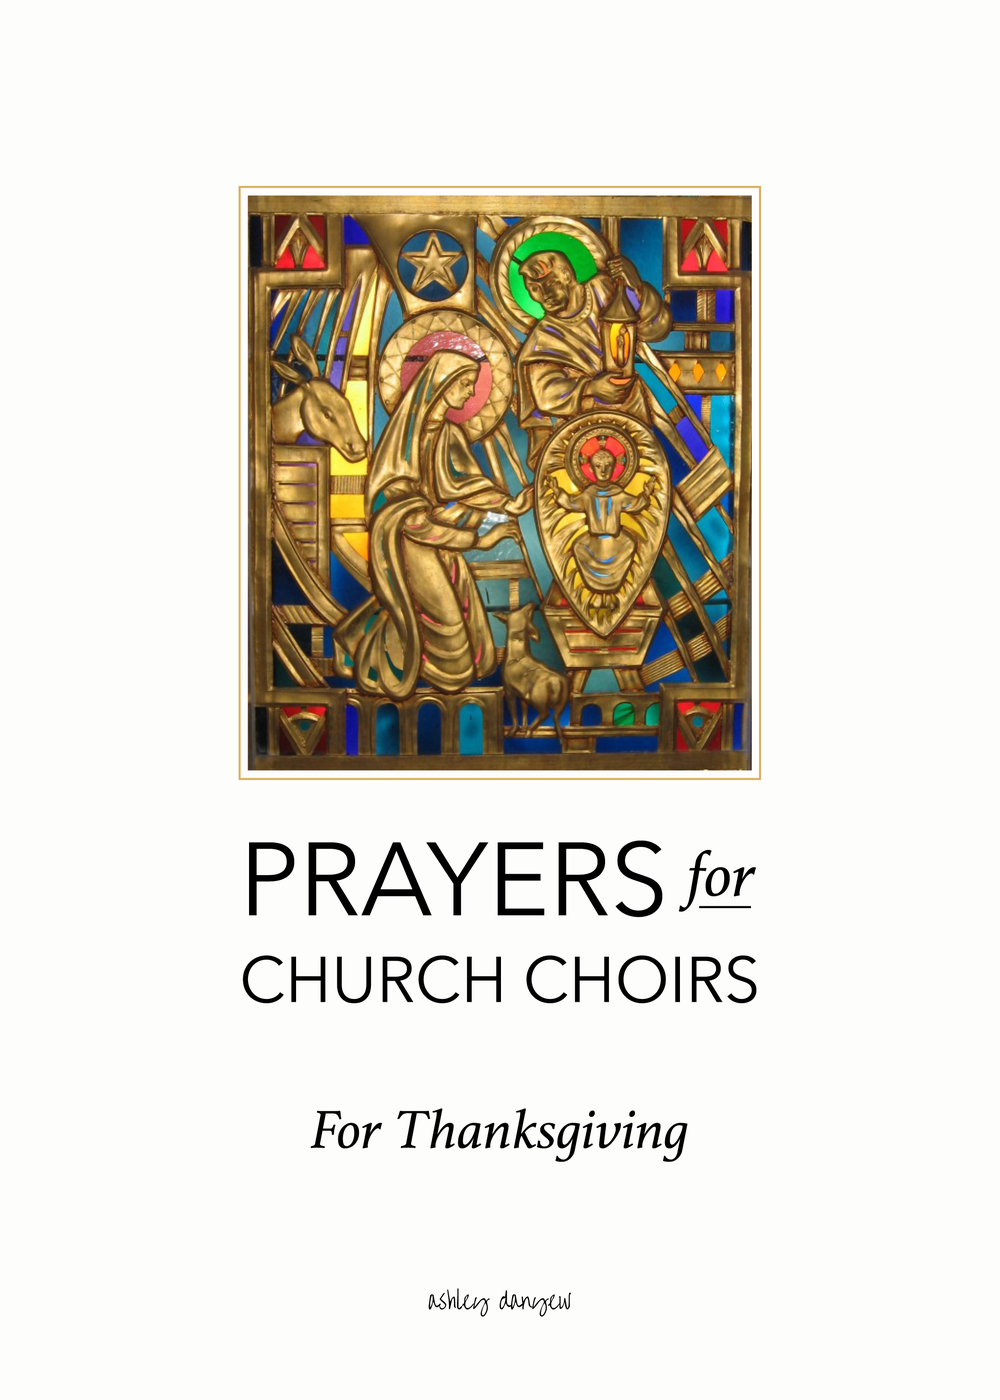 Copy of Prayers for Church Choirs: For Thanksgiving